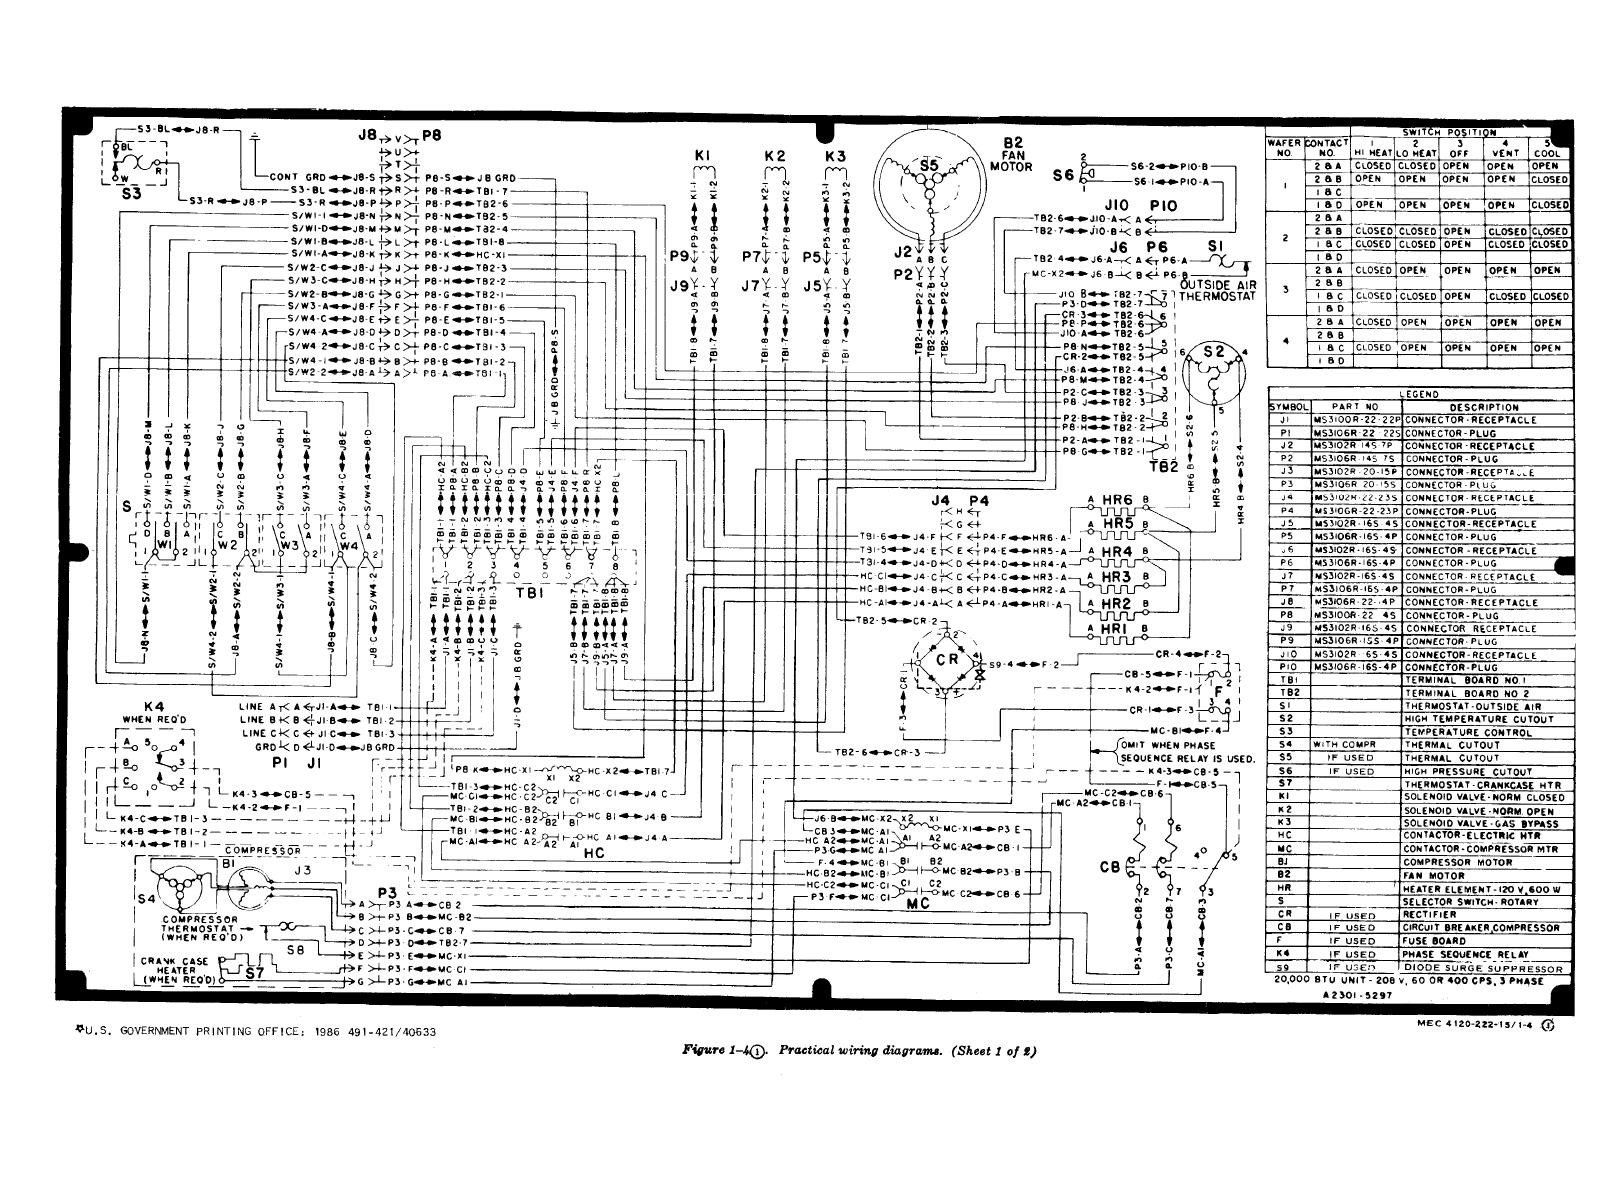 trane rooftop hvac wiring diagrams wiring diagram centretrane rooftop ac wiring diagrams wiring diagram databasetrane commercial [ 1613 x 1190 Pixel ]